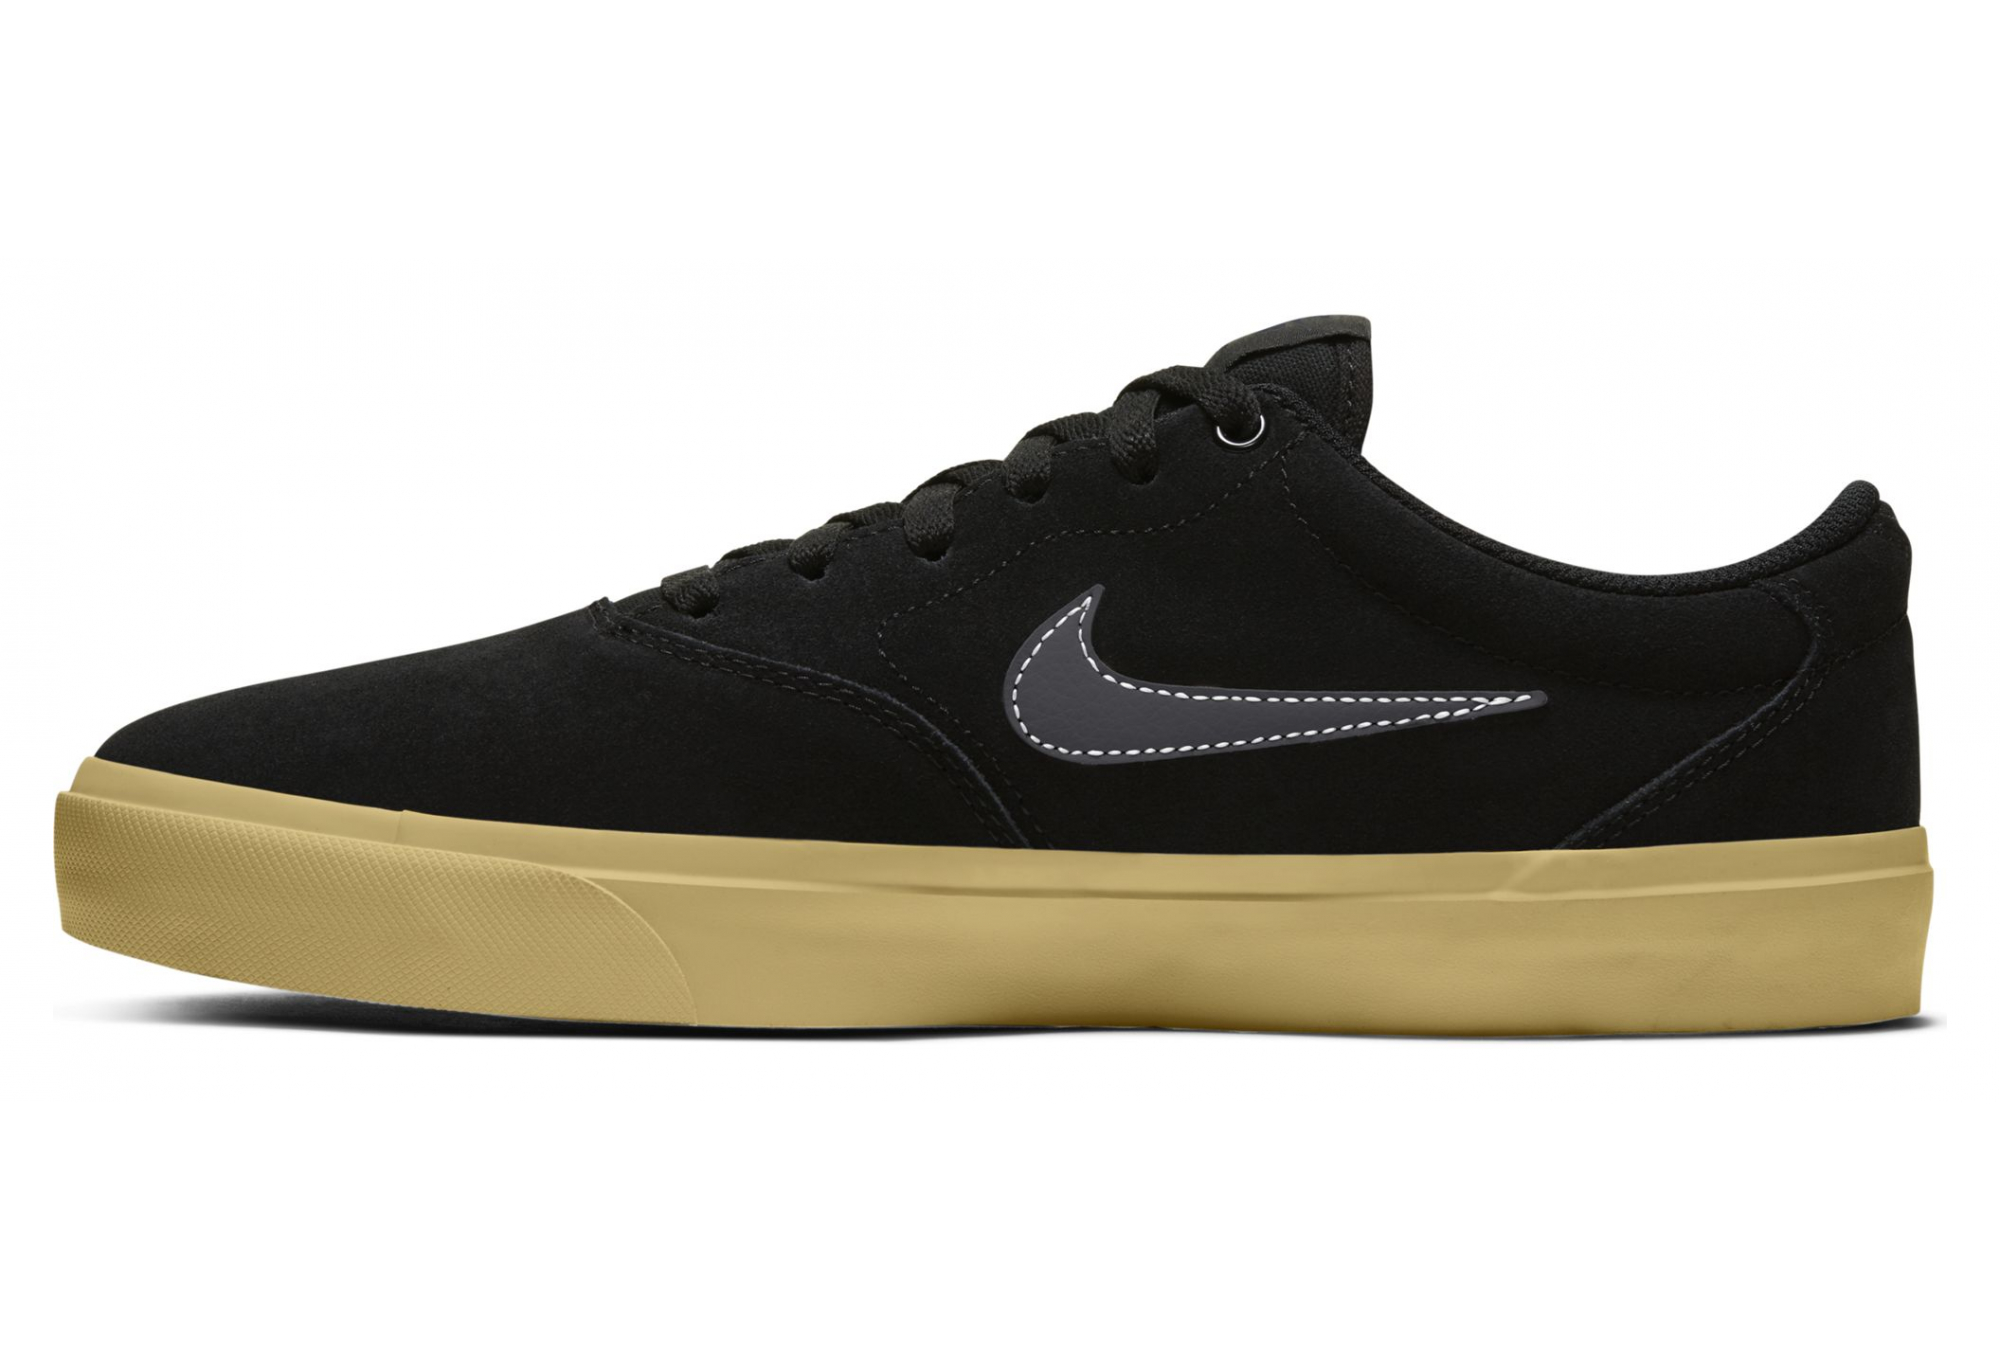 Chaussures Nike SB Charge Suede Noir Gris